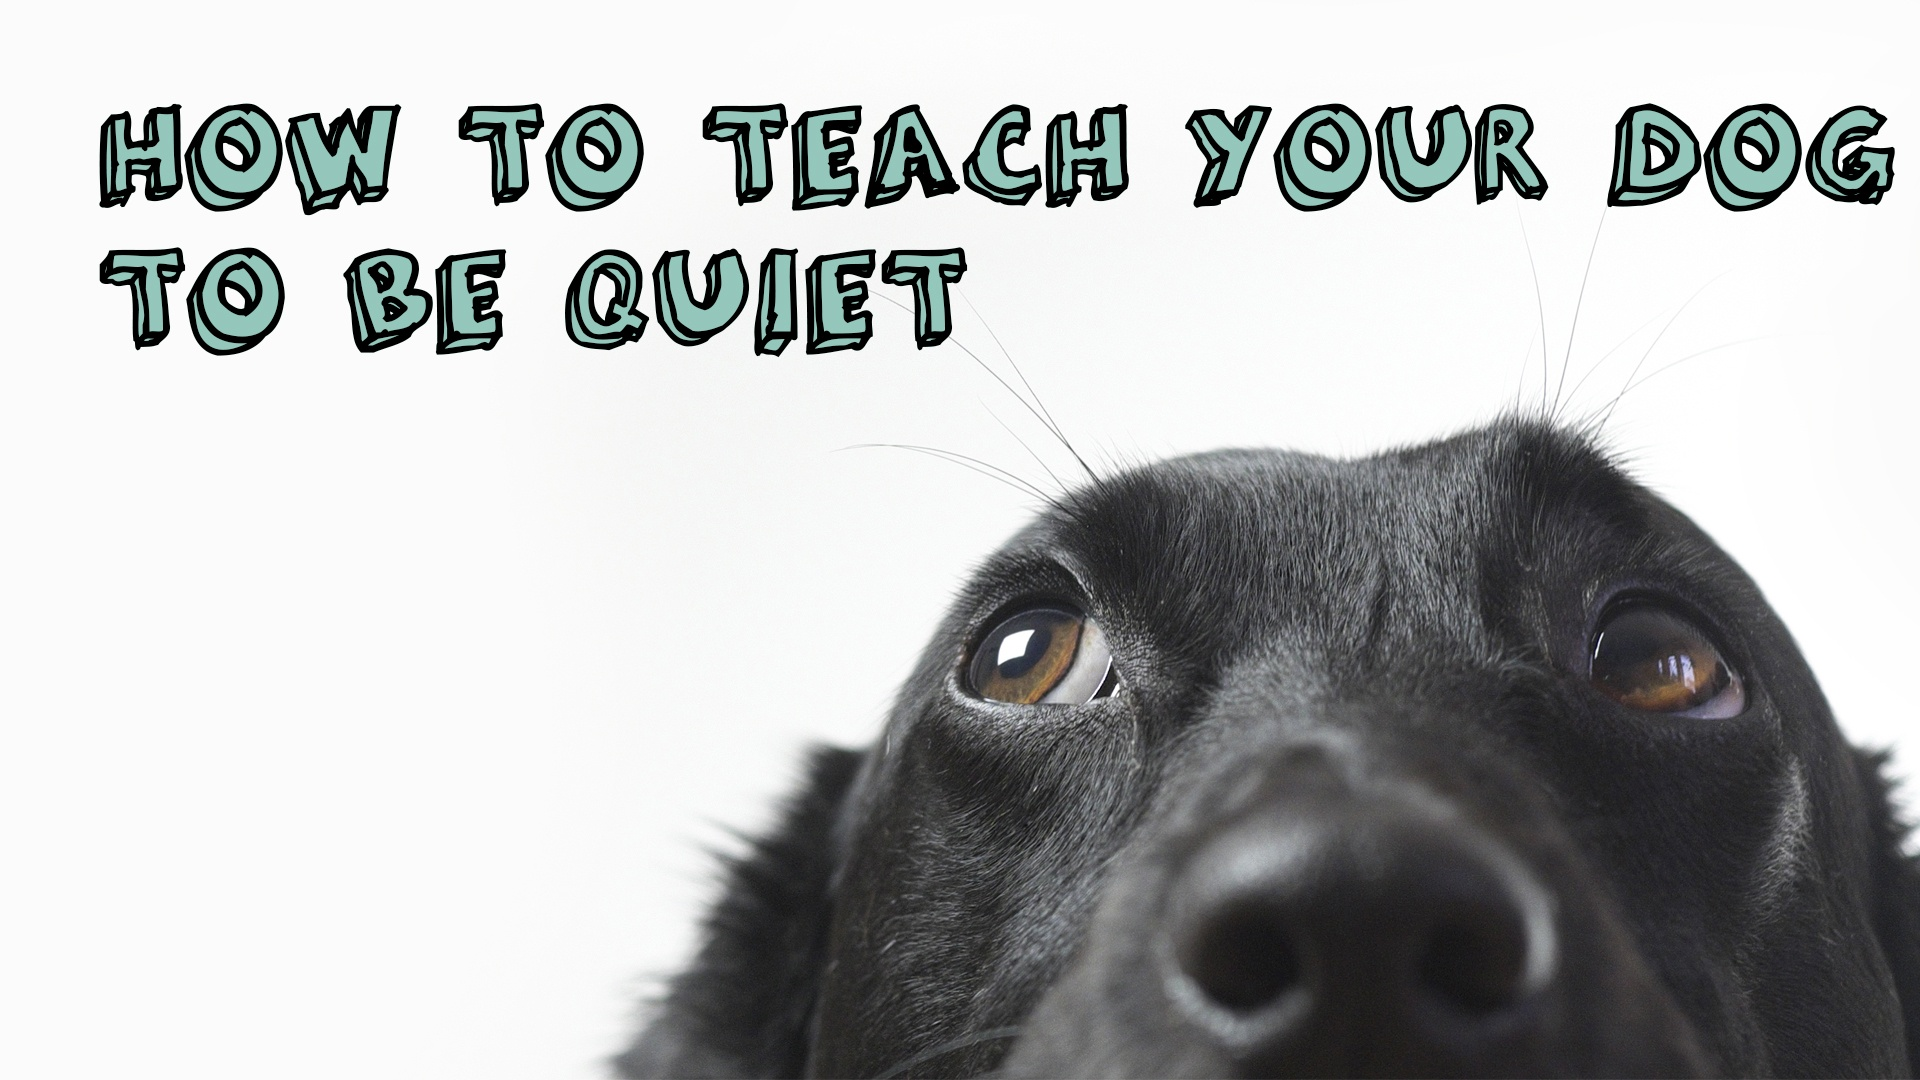 How to teach your dog to be quiet